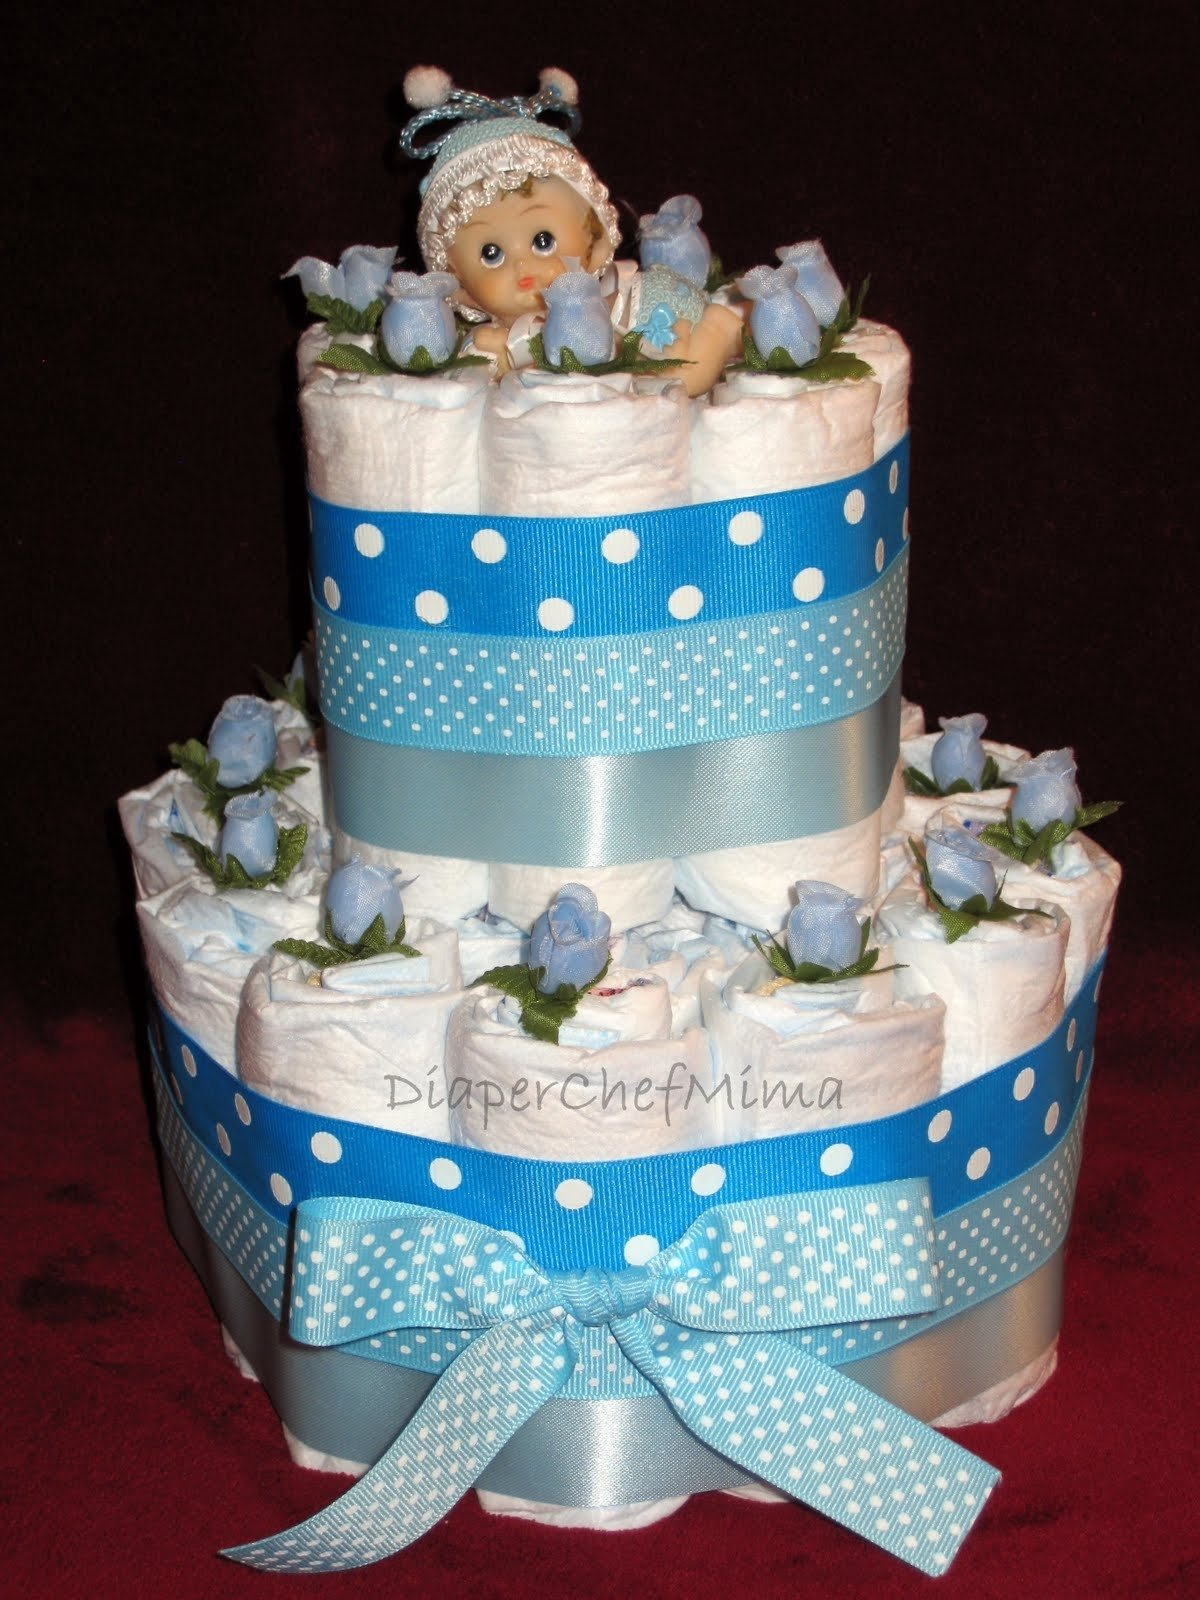 10 Cute Diaper Cake Ideas For Baby Boy baby shower diaper cakes ideas wreath party decoration cake girl